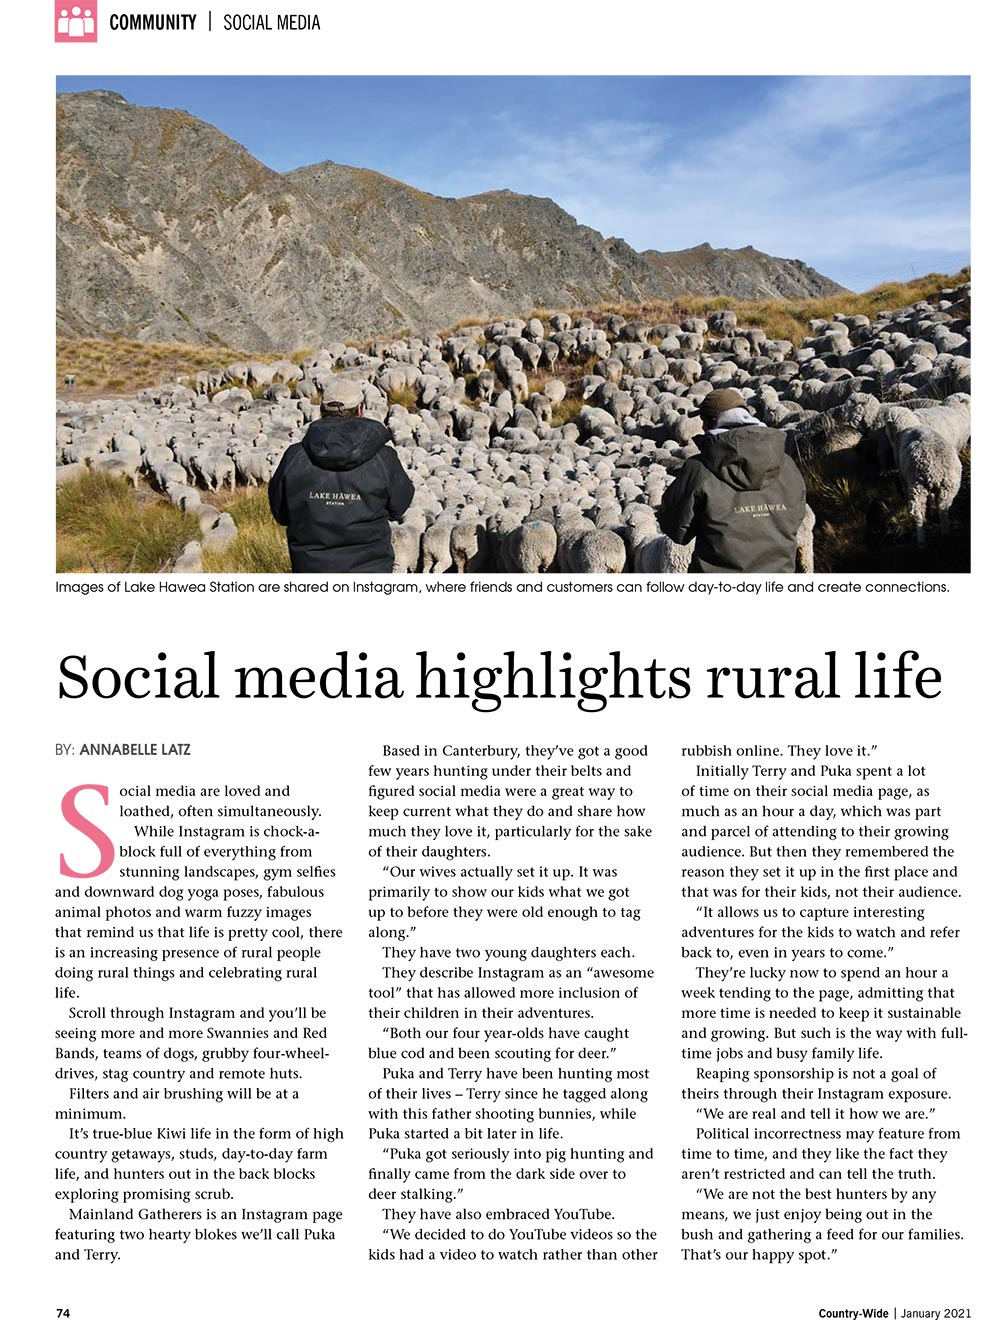 Social media highlights rural life | With Belles On